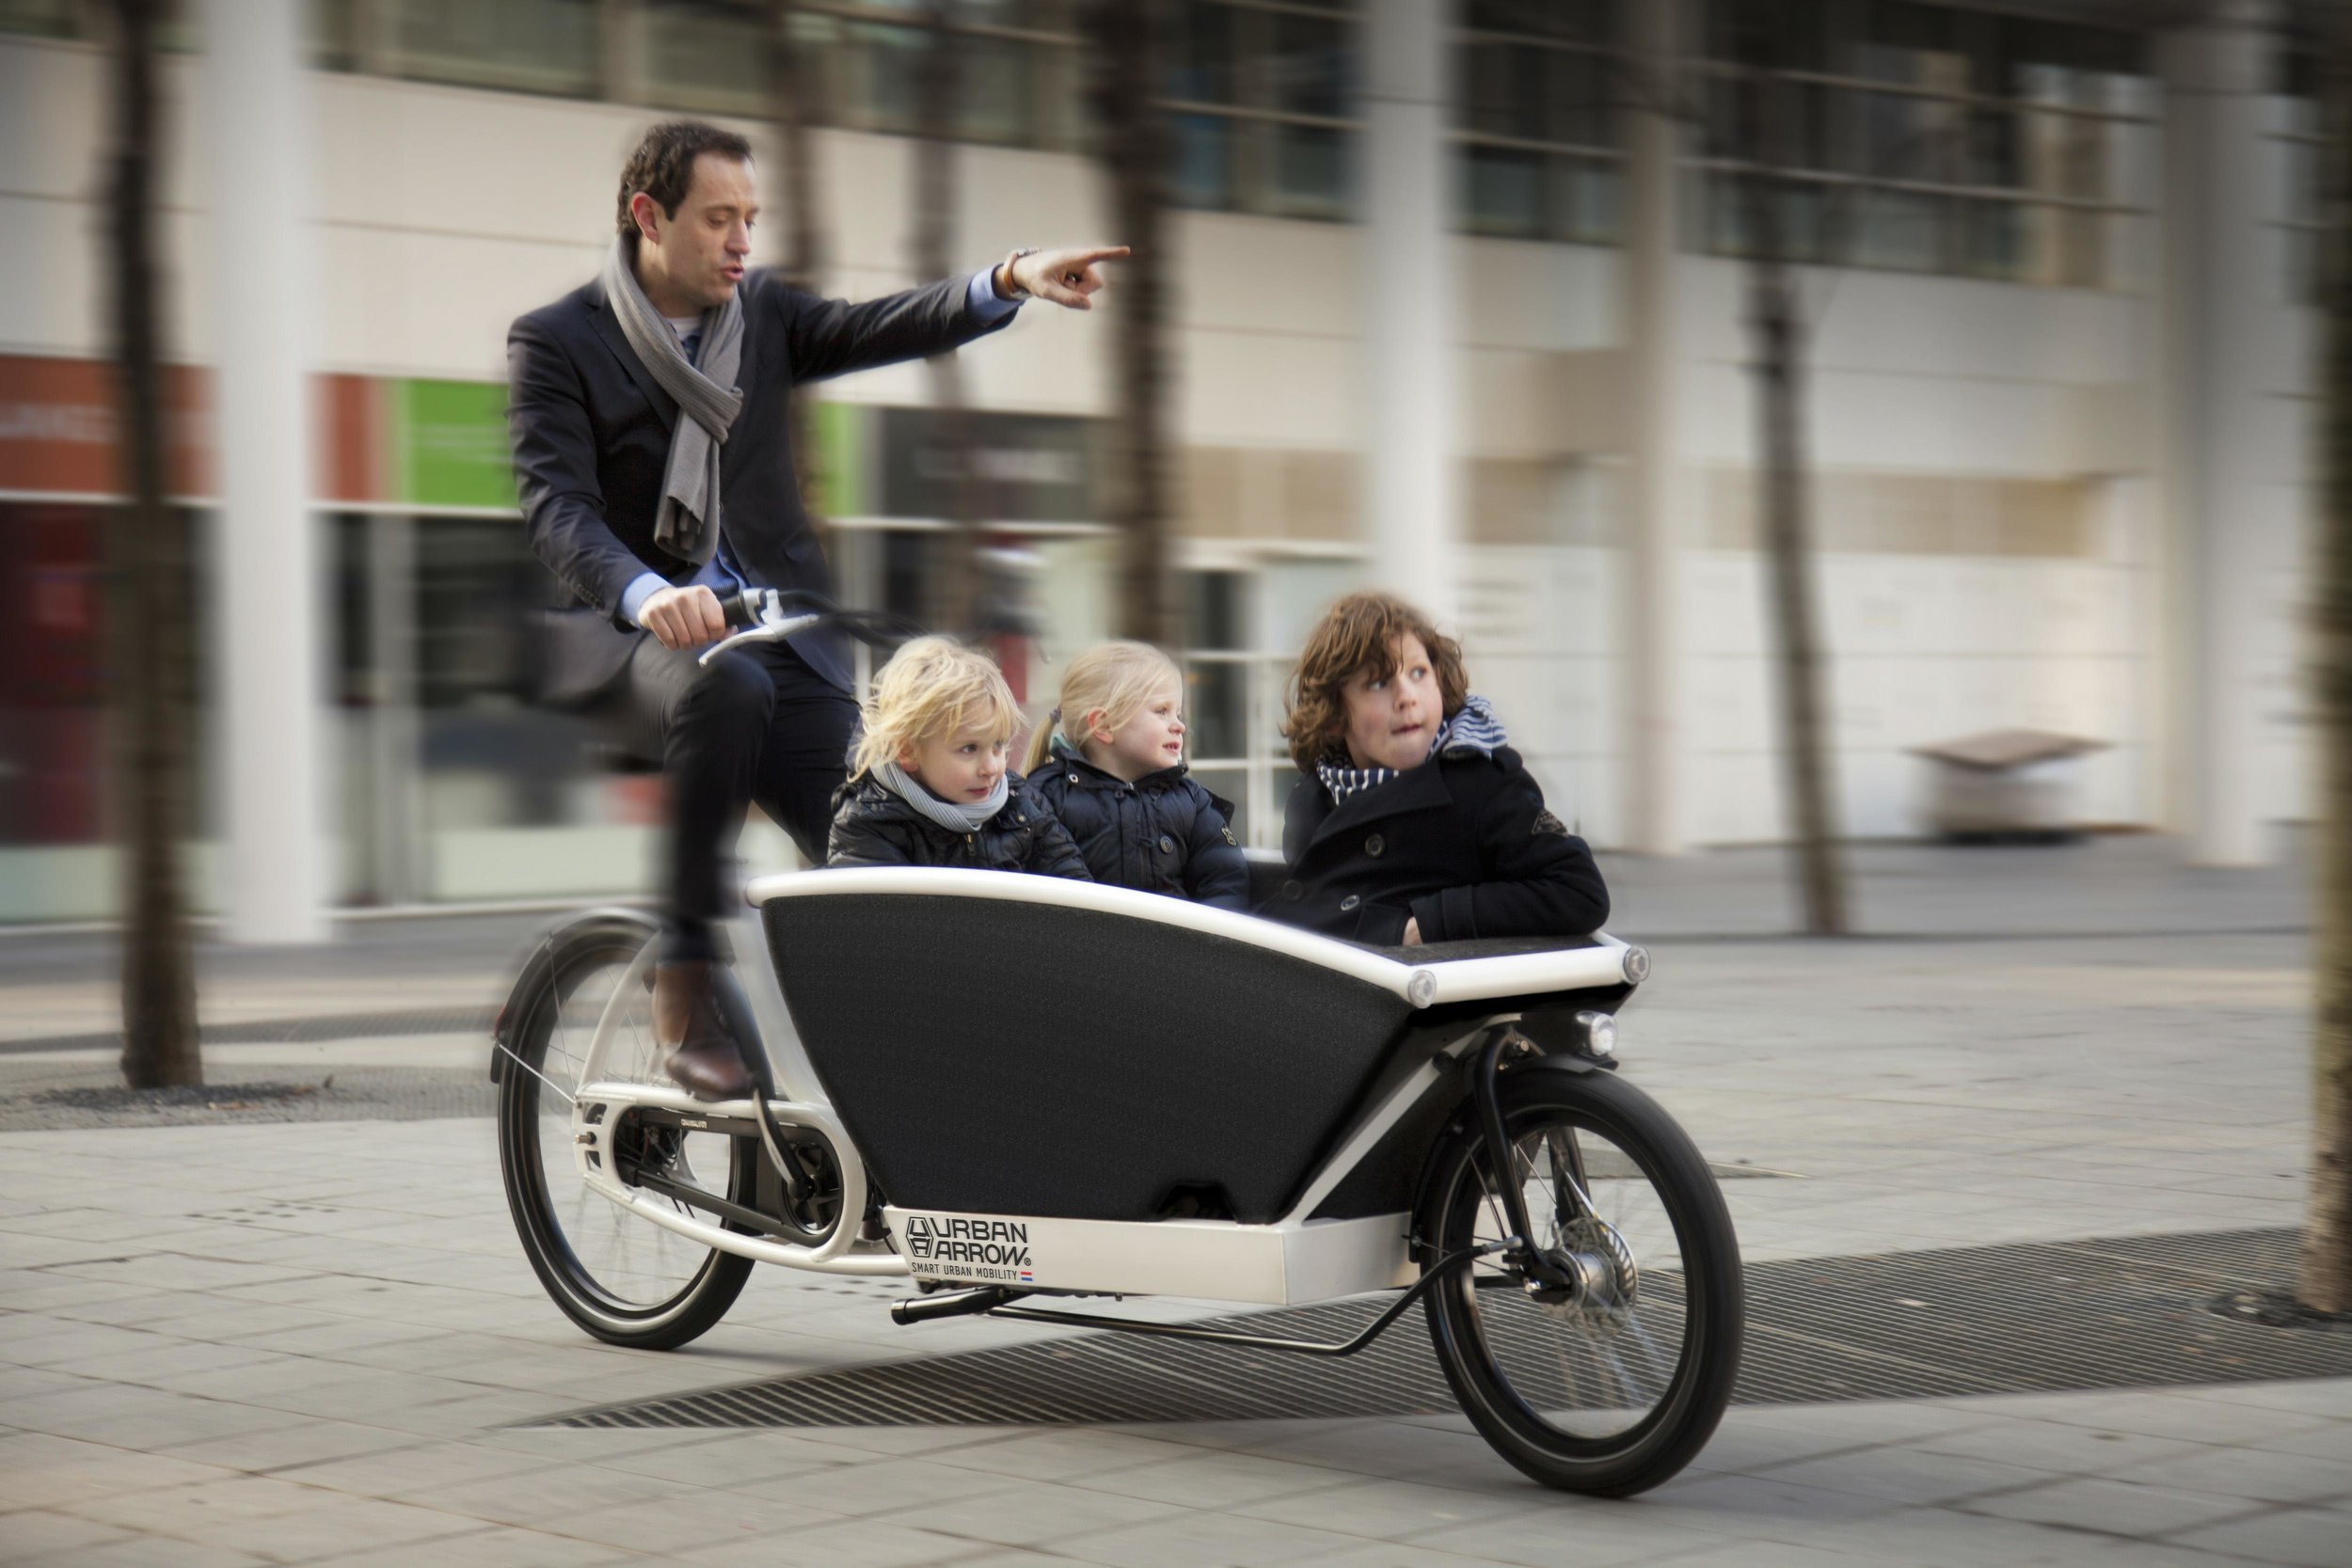 radstation-augsburg-ebike-family-bike-London-urban-arrow.jpg